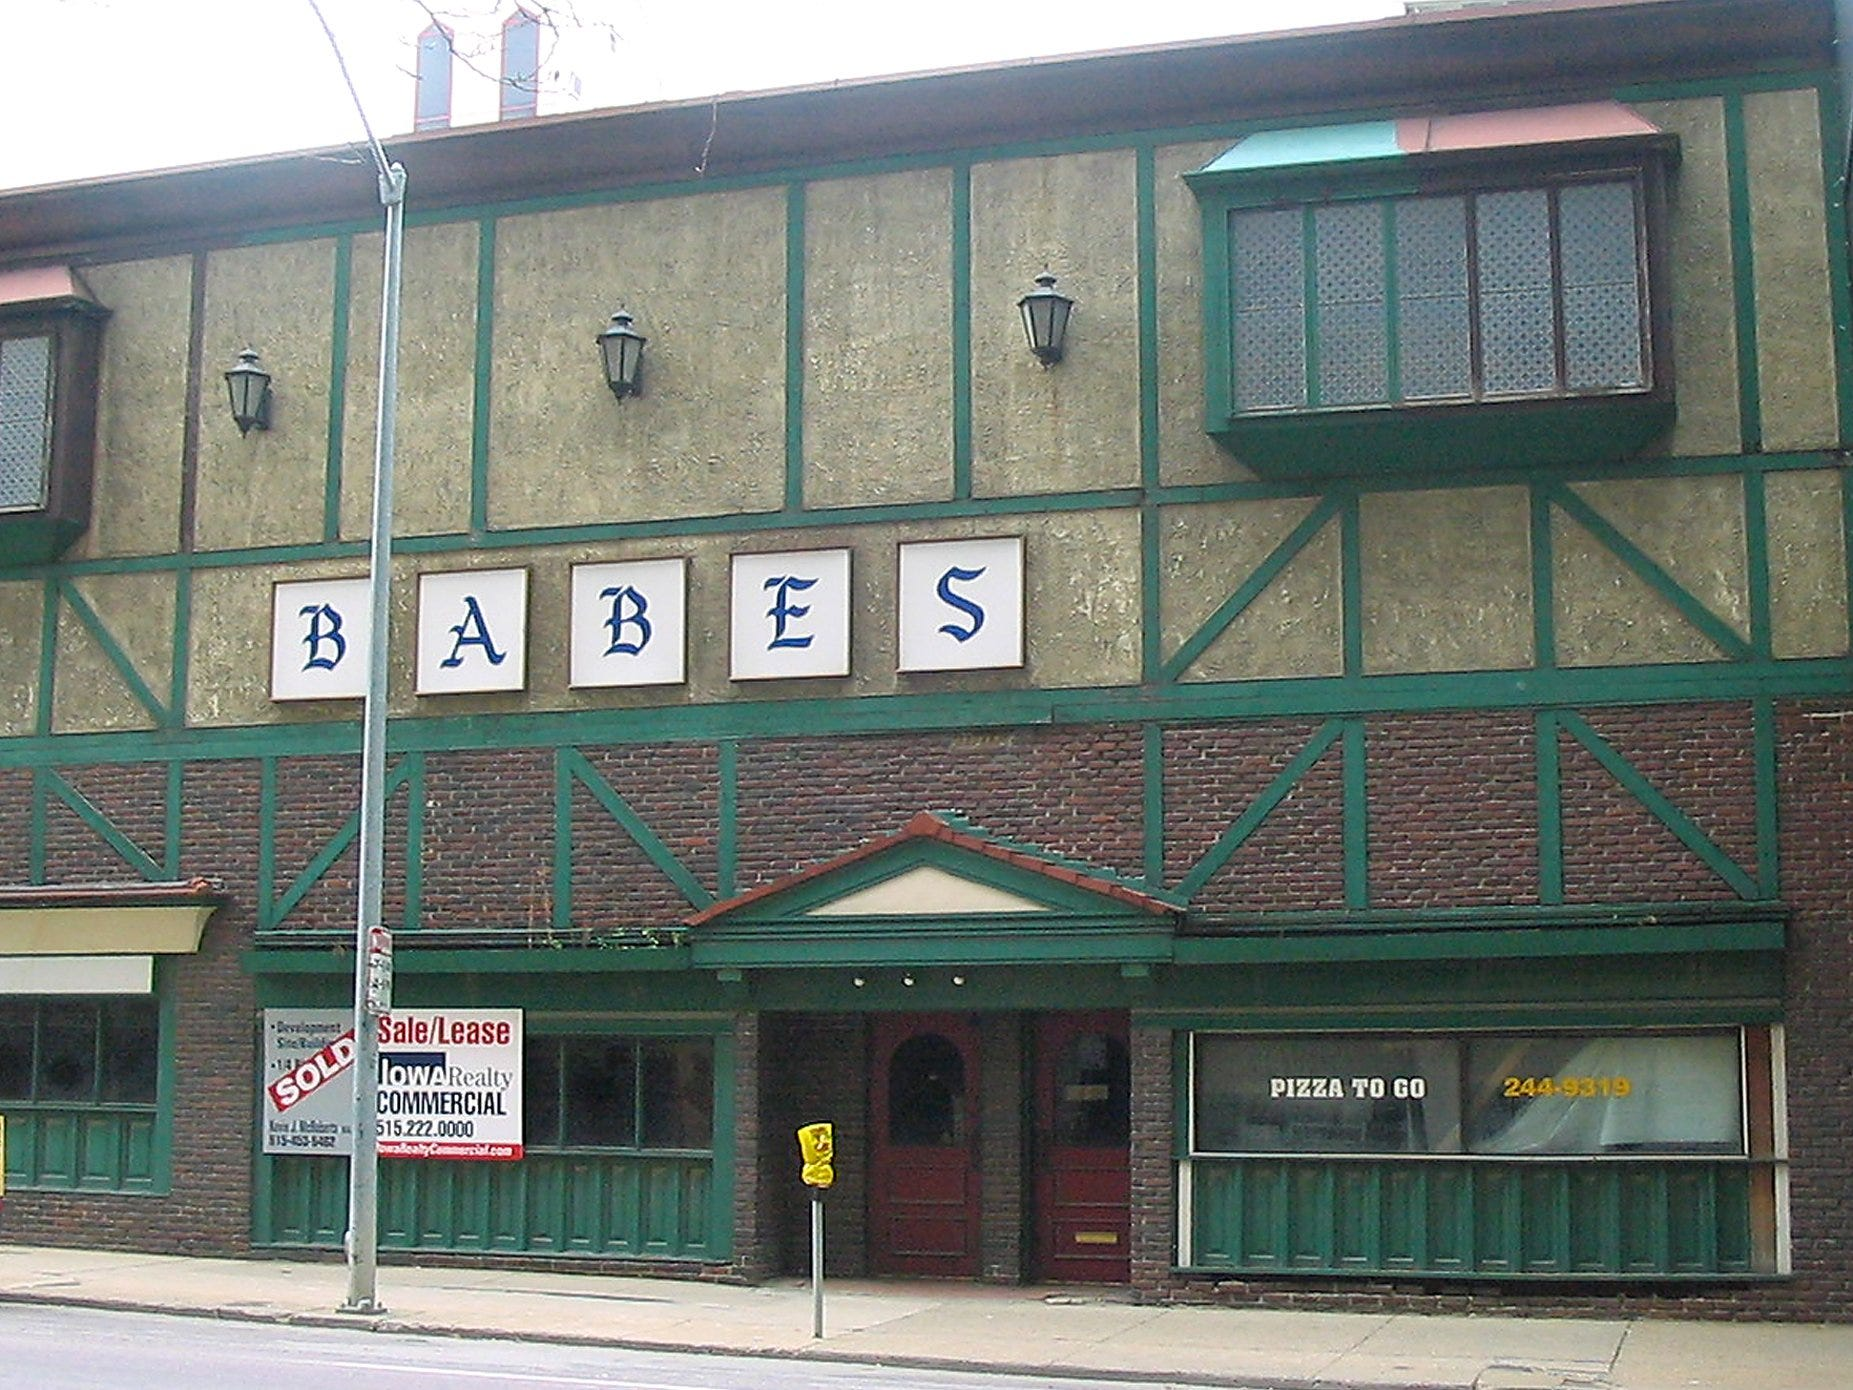 From 2004: The sign at lower left indicates the once-popular Babe's Restaurant on Sixth Avenue has been sold.